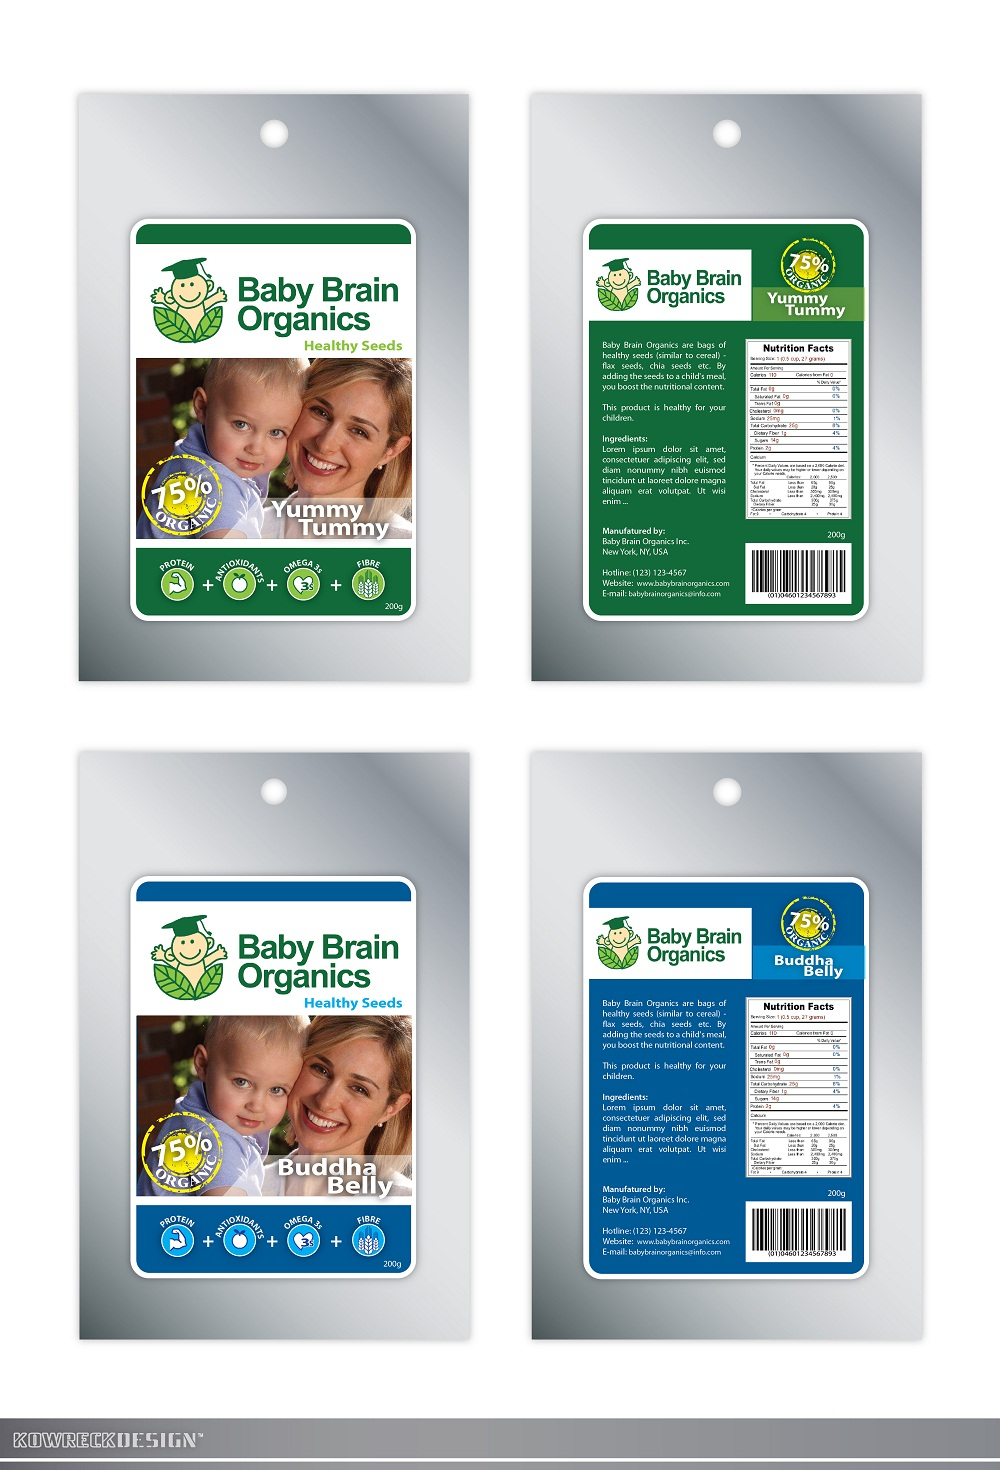 Packaging Design by kowreck - Entry No. 92 in the Packaging Design Contest Baby Brain Organics Packaging Design.